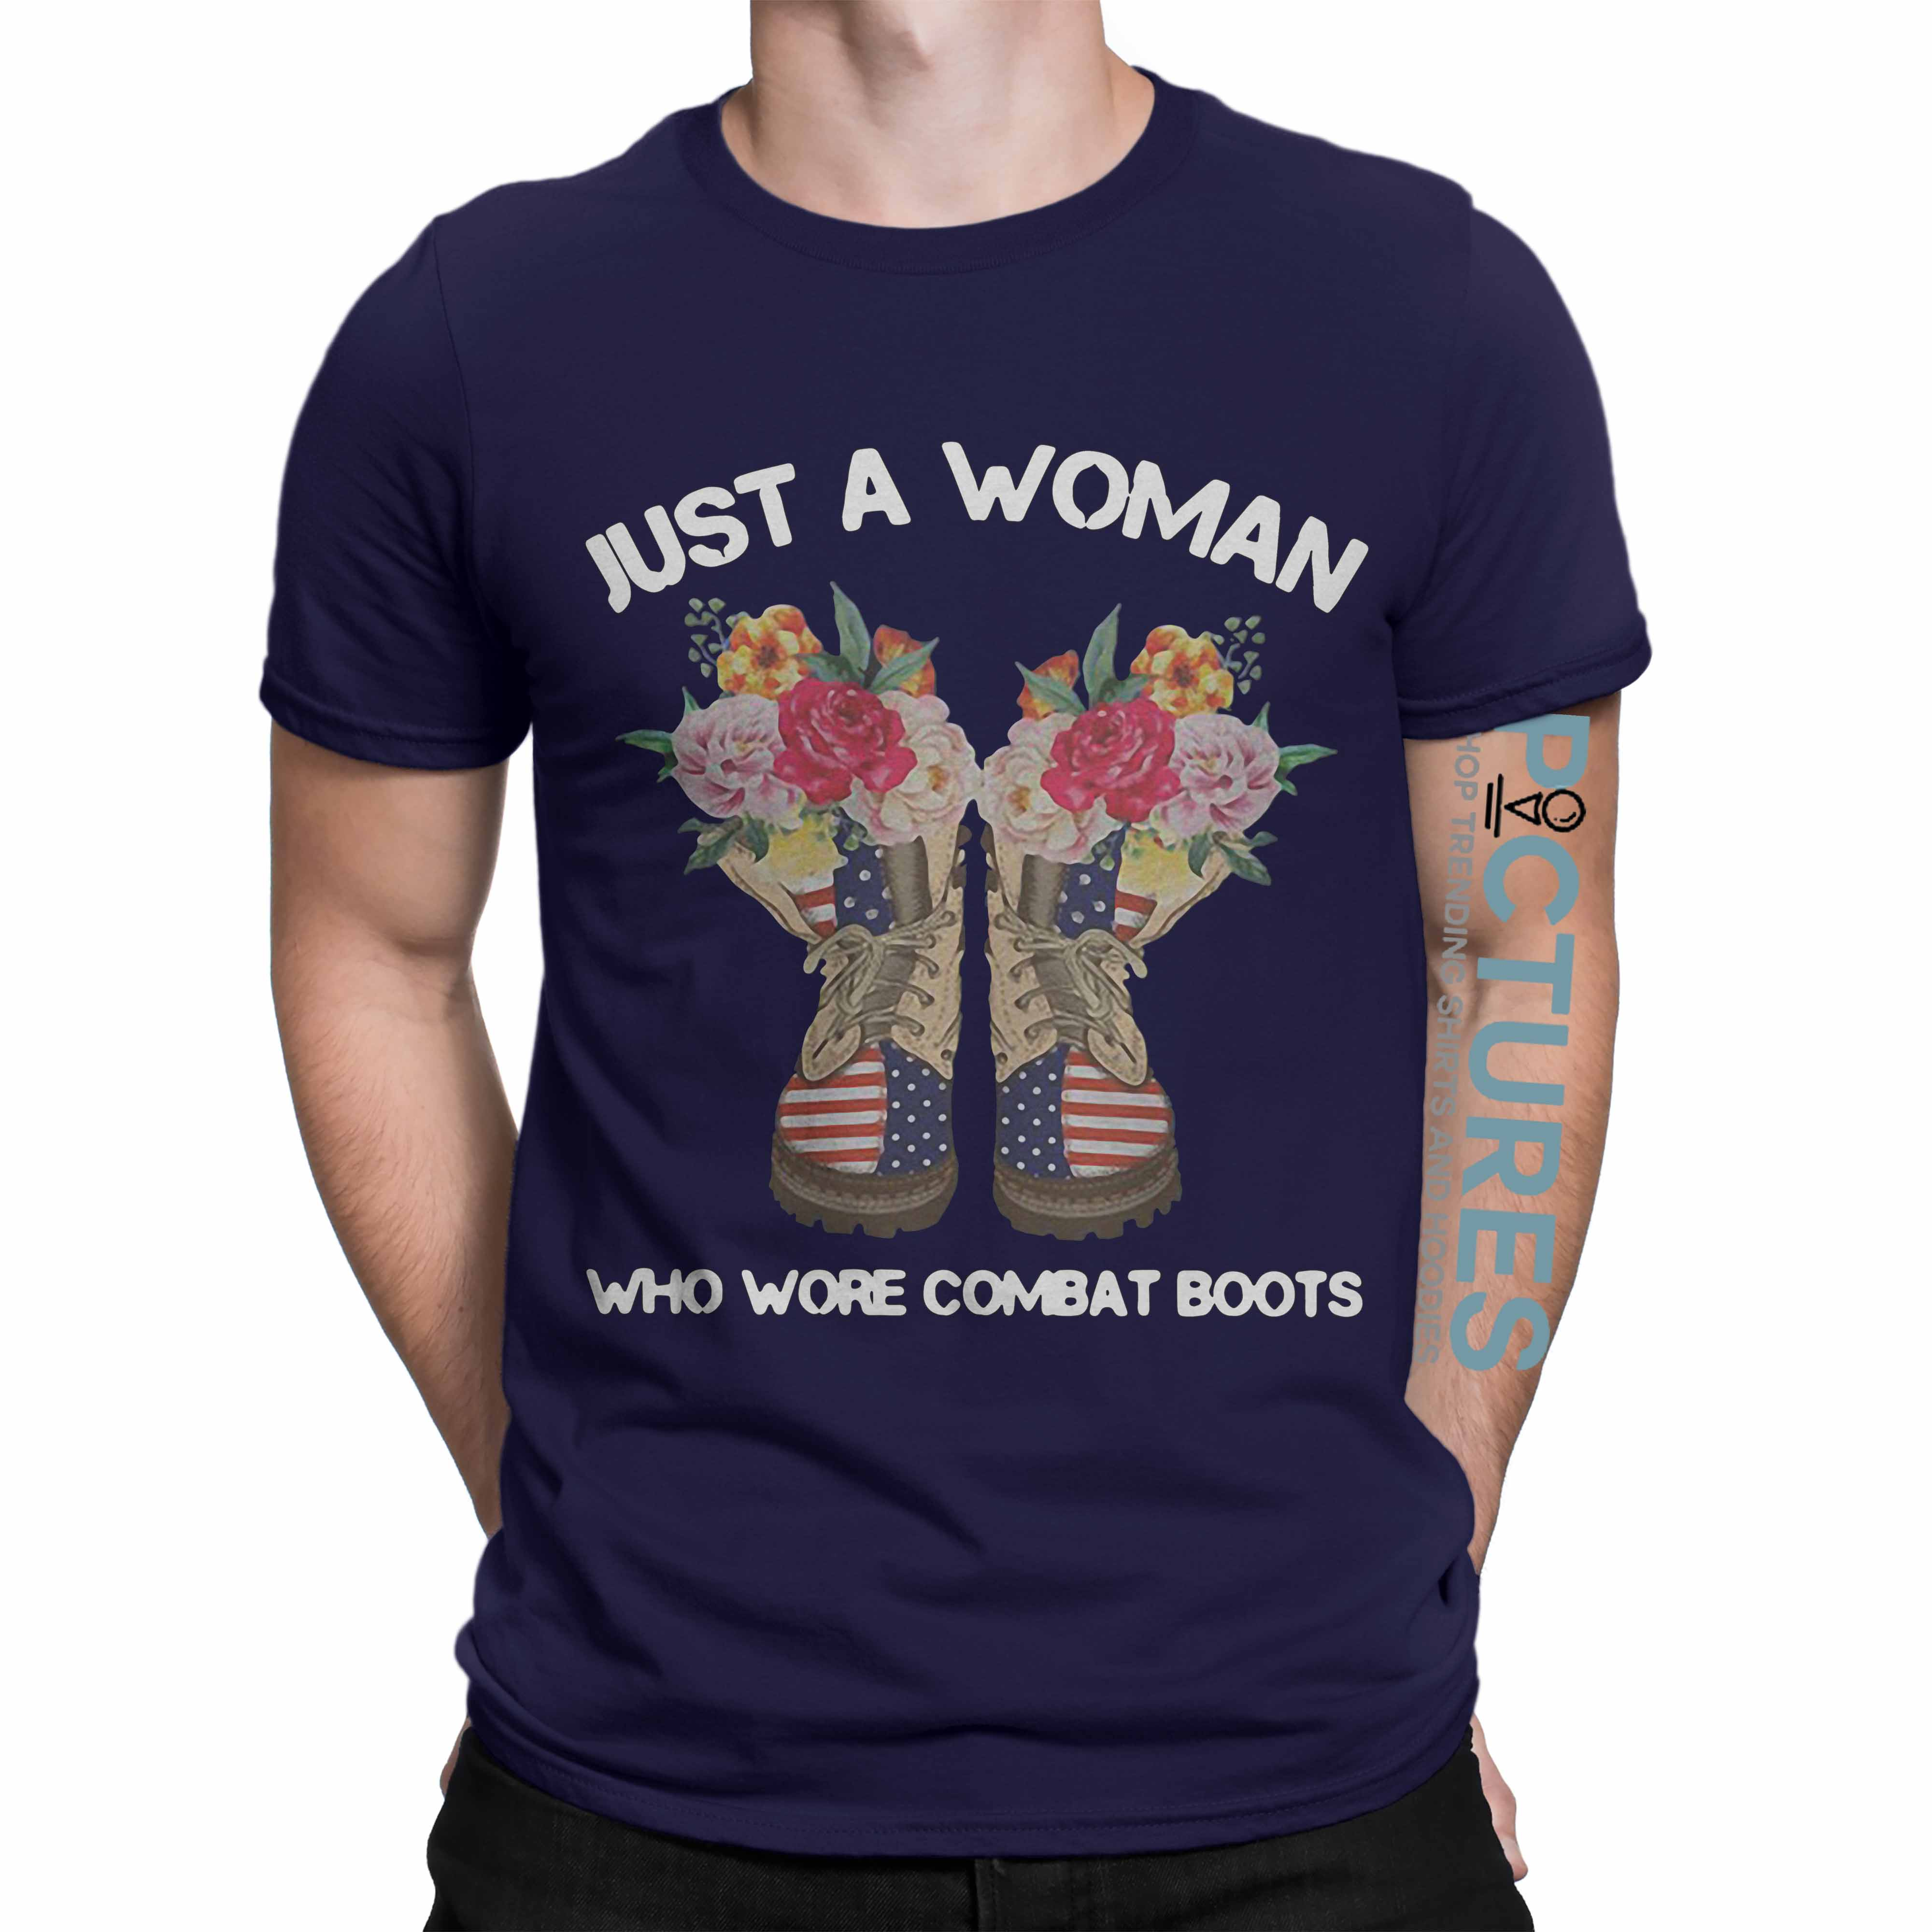 Official Just a Woman wore combat boots shirt